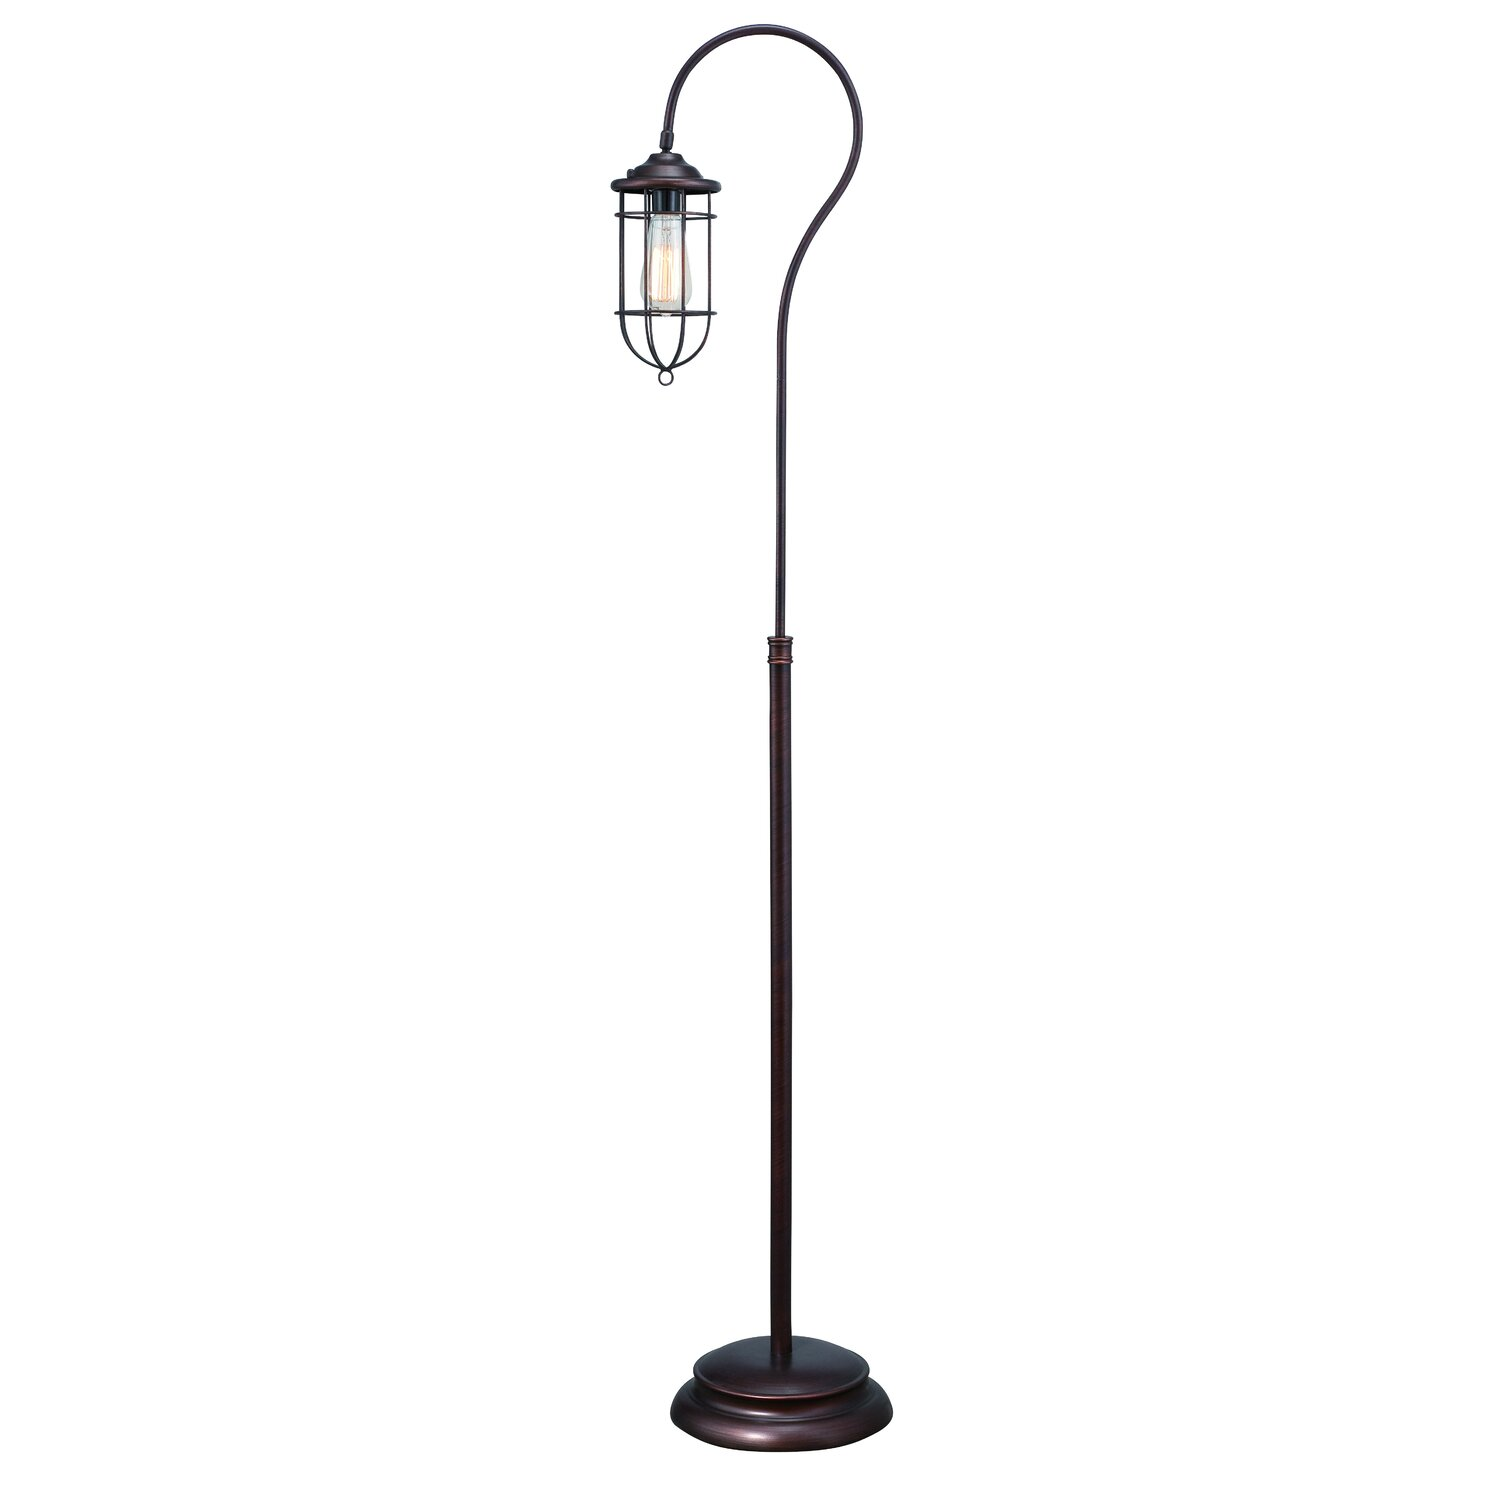 "Normande Lighting Vintage 62"" Floor Lamp"